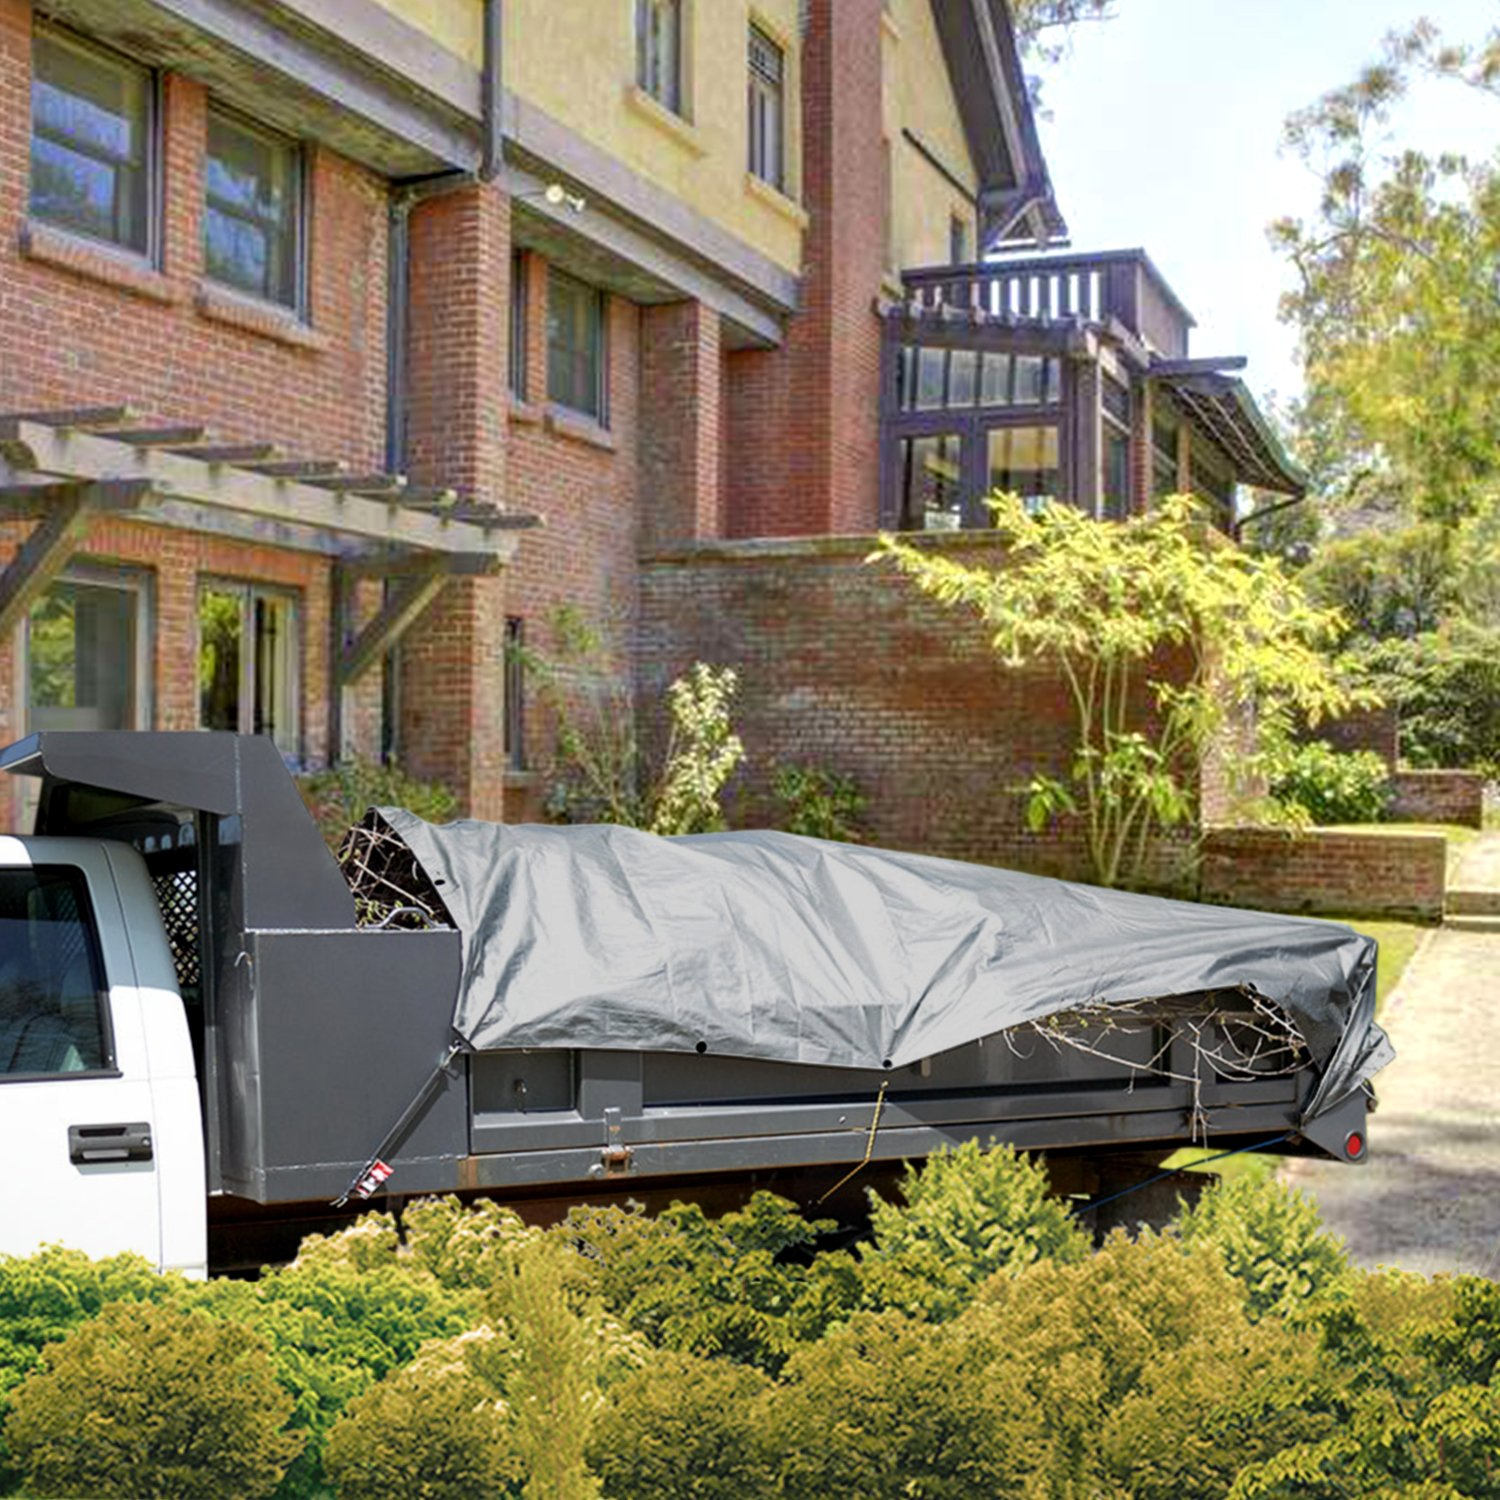 Coarbor 20/'x40/' Waterproof Tarp Poly Heavy Duty 10 Mil Multi-Purpose Protect Outdoor Property Furniture Grill Wood Pie Trunk Cover Silver